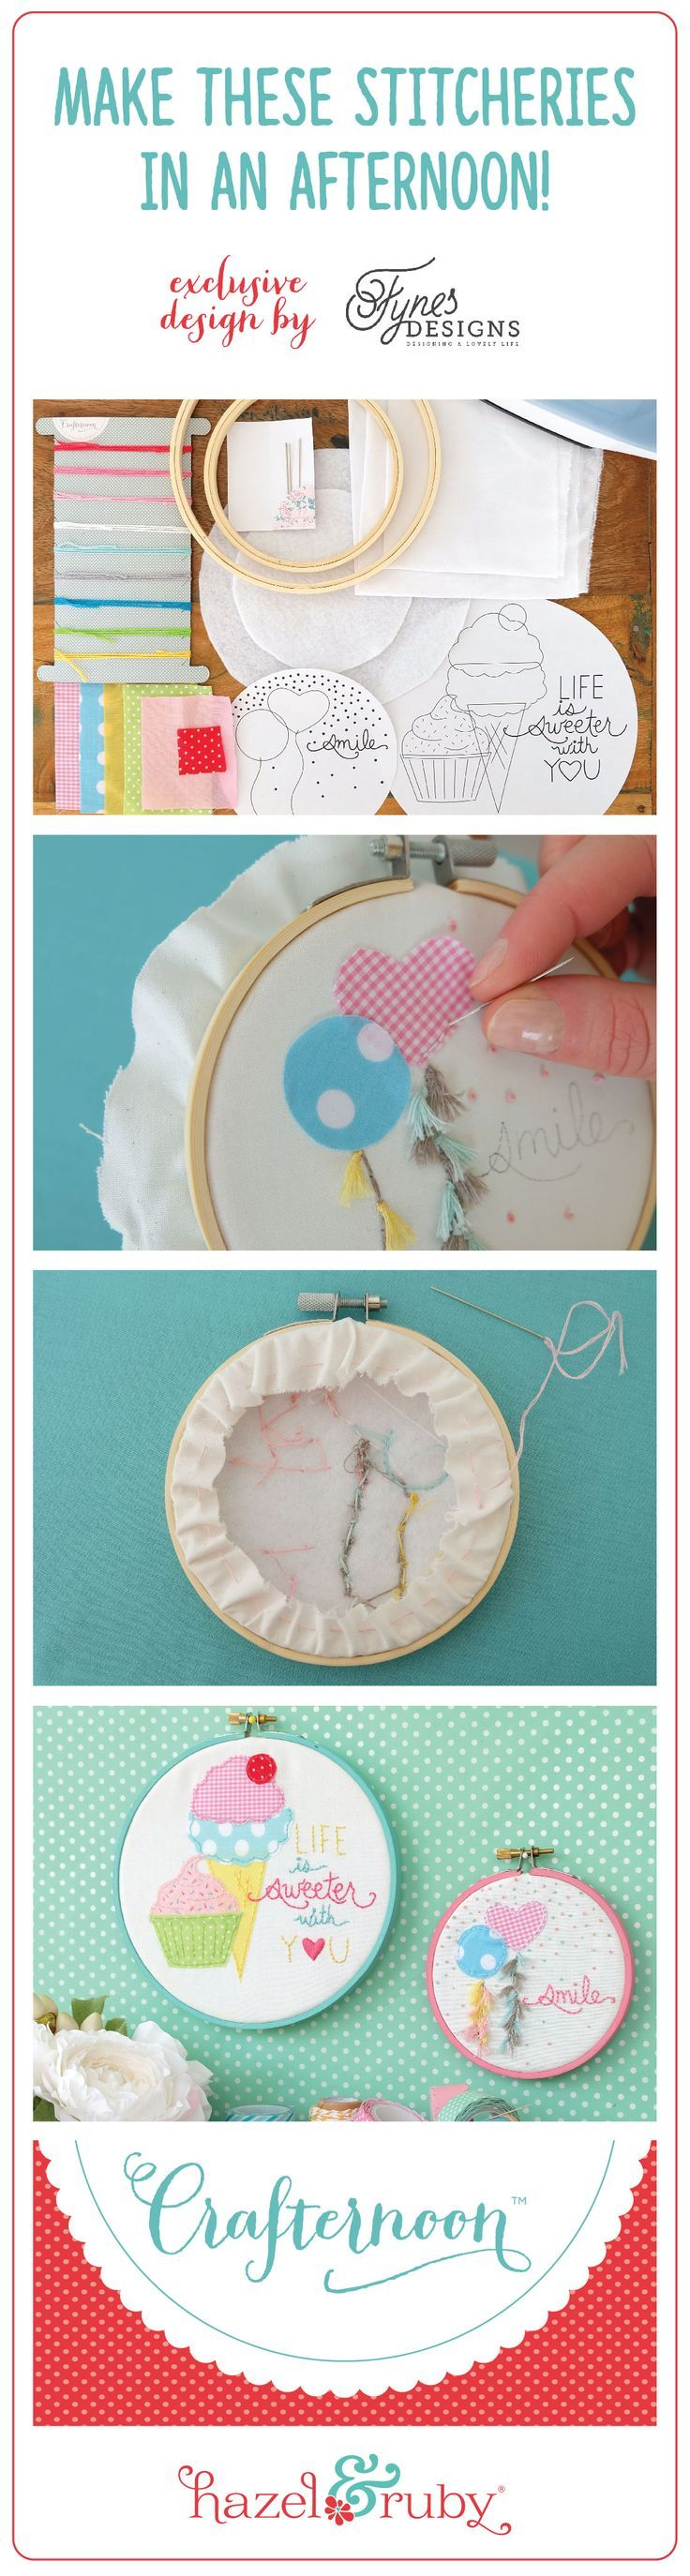 Crafternoon Embroidery Hoop Art Kit On Sale Now